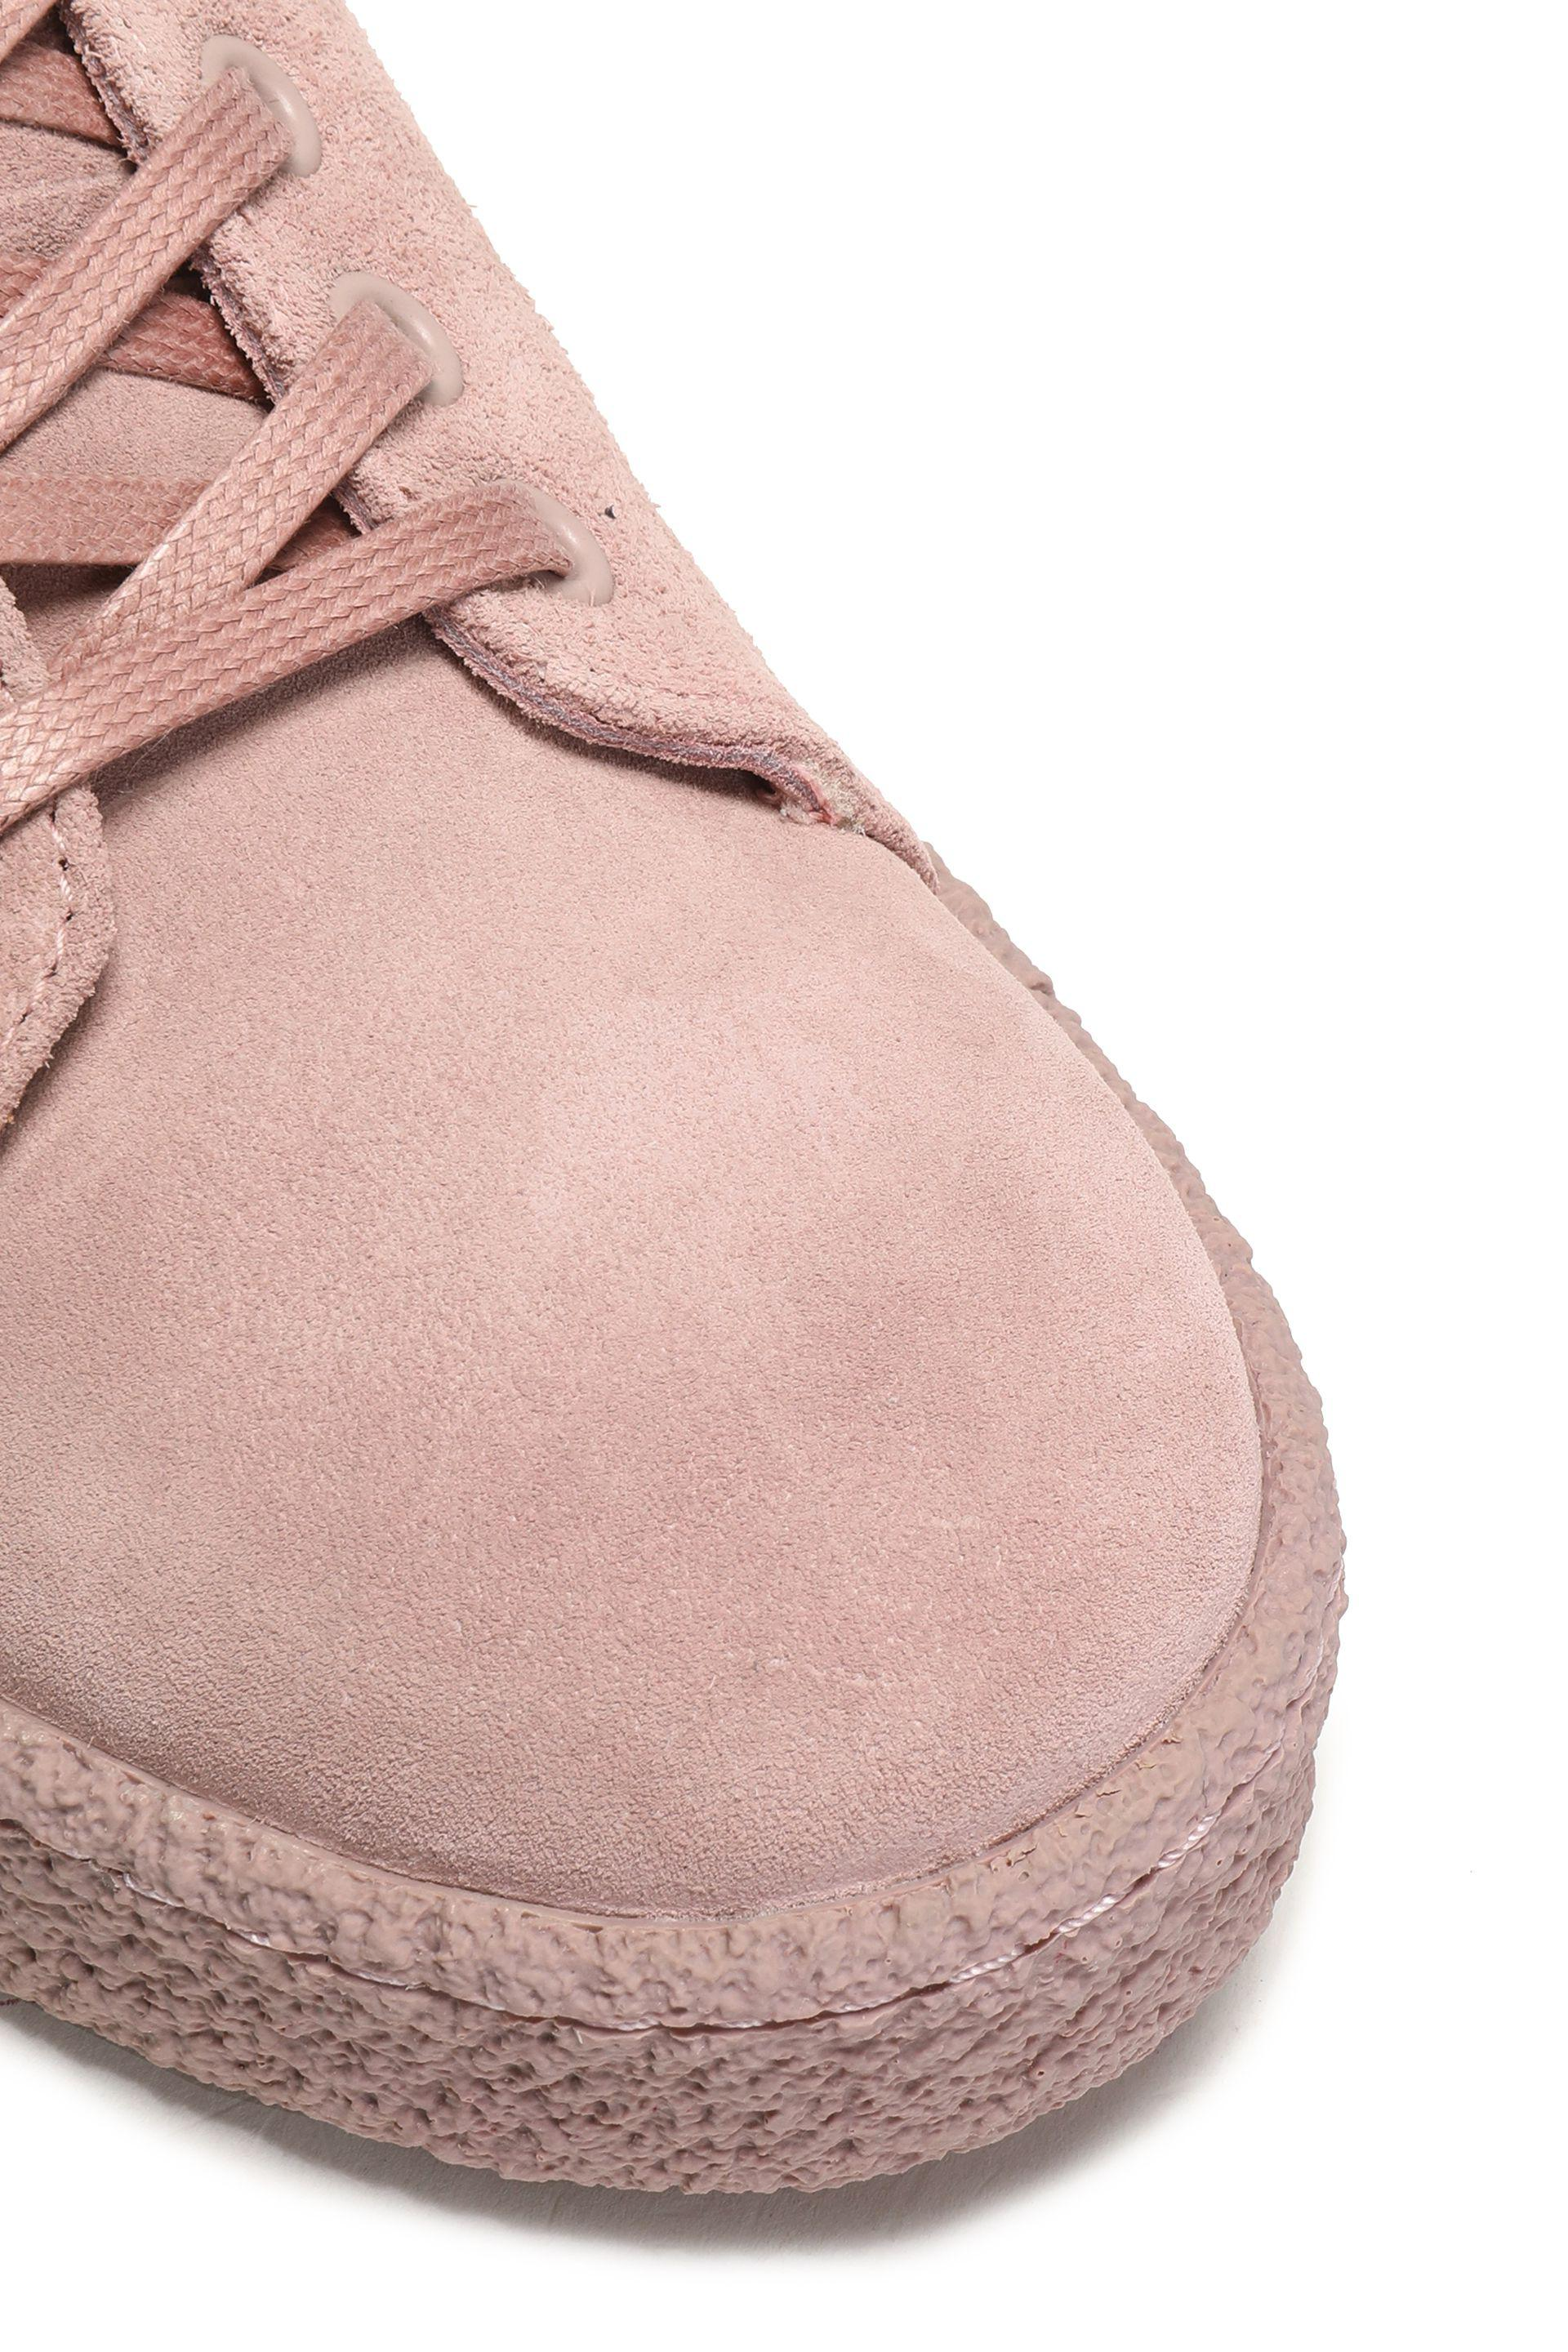 Eytys Suede Sneakers in Antique Rose (Pink)